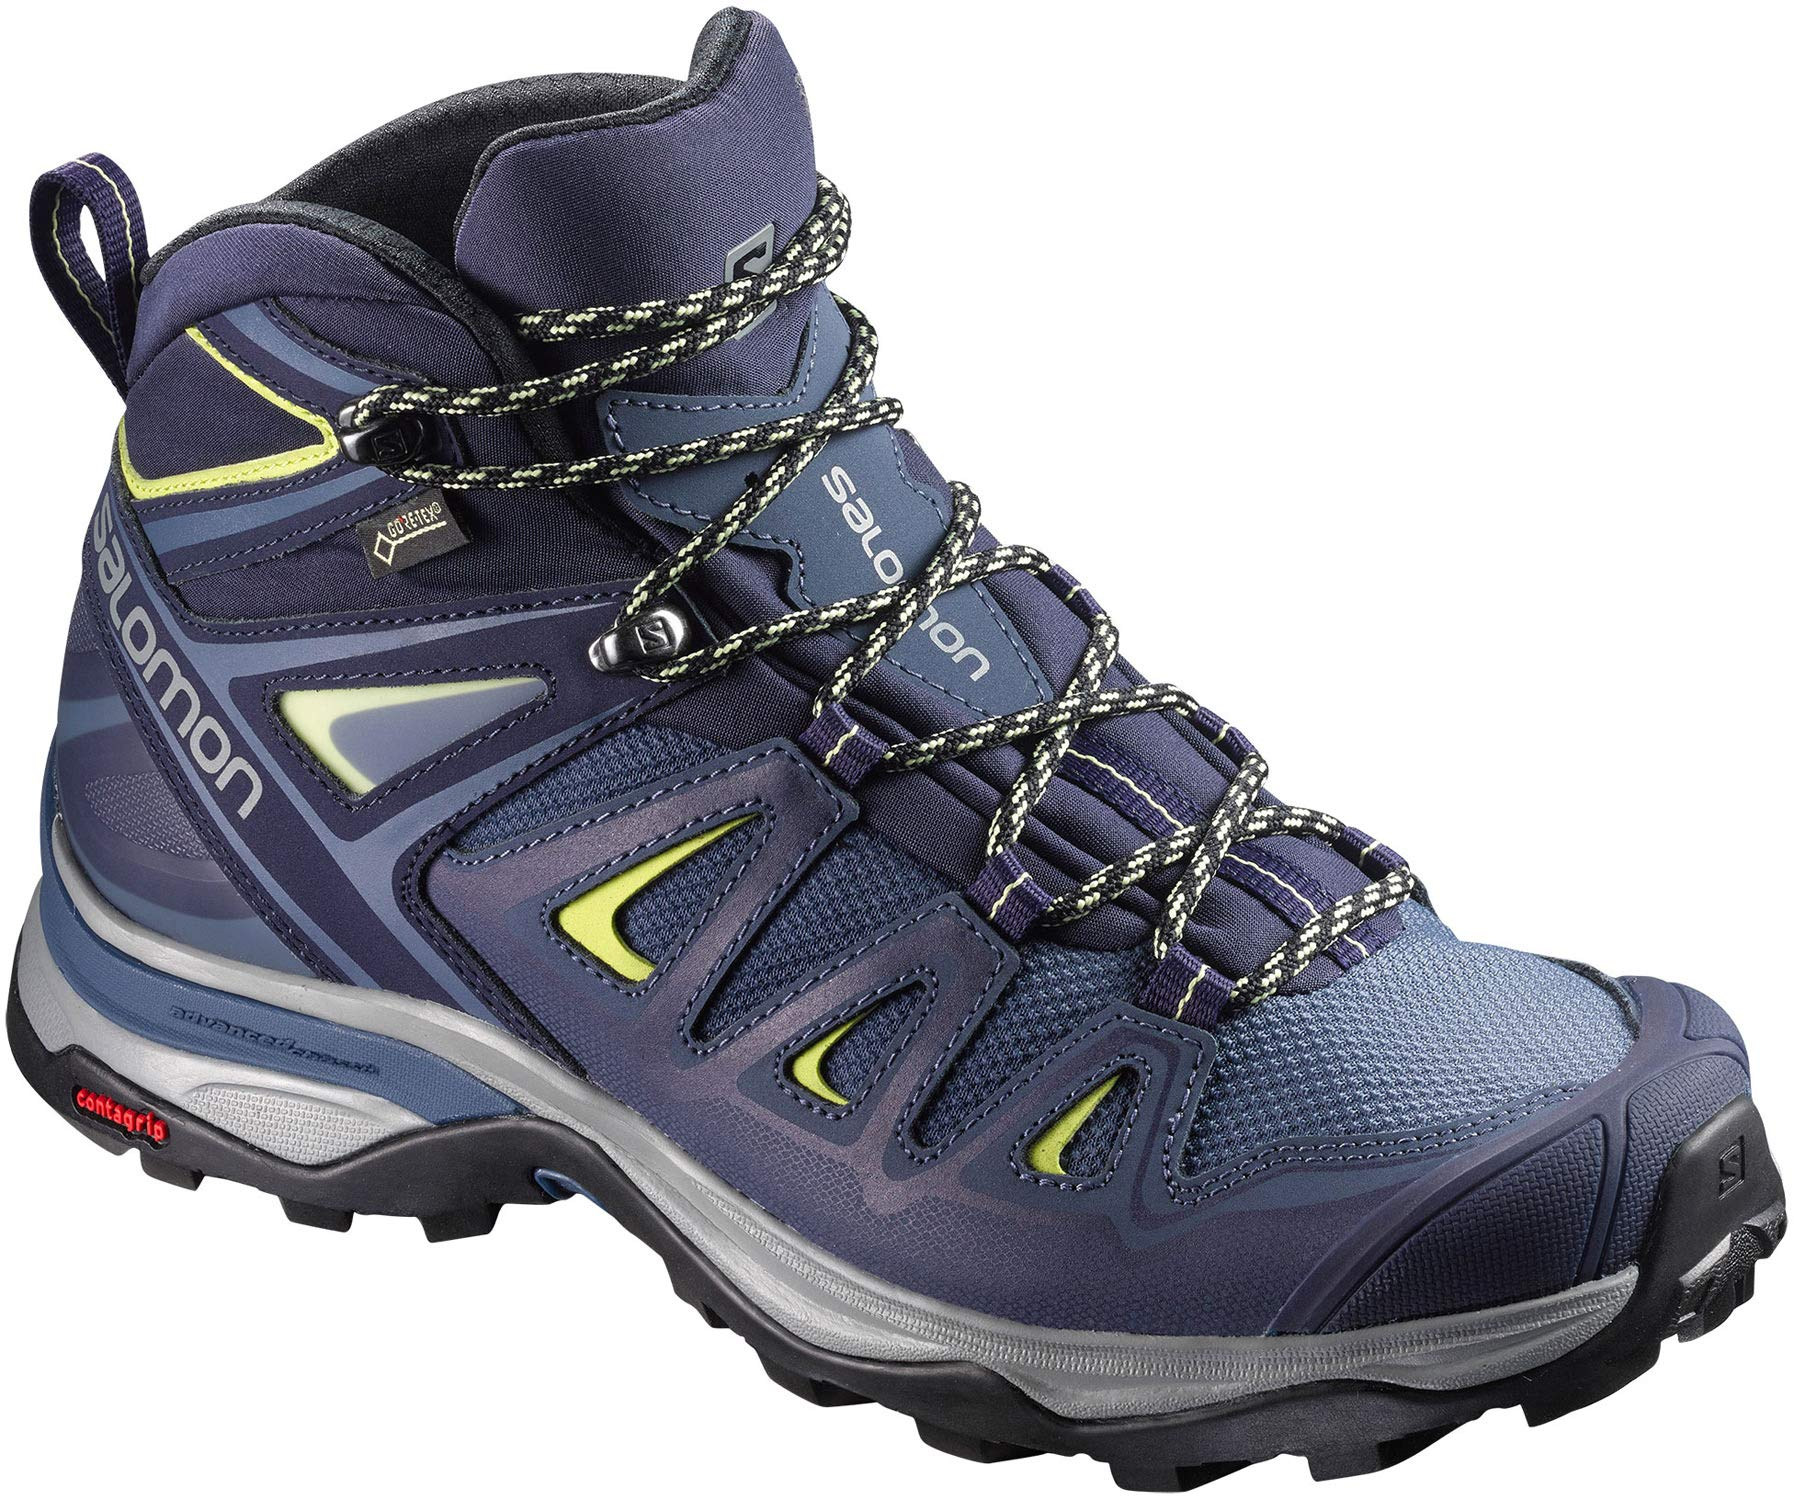 Salomon Women's X Ultra 3 Wide Mid GTX Hiking Boots, Crown Blue/Evening Blue/Sunny Lime, 9 Wide by SALOMON